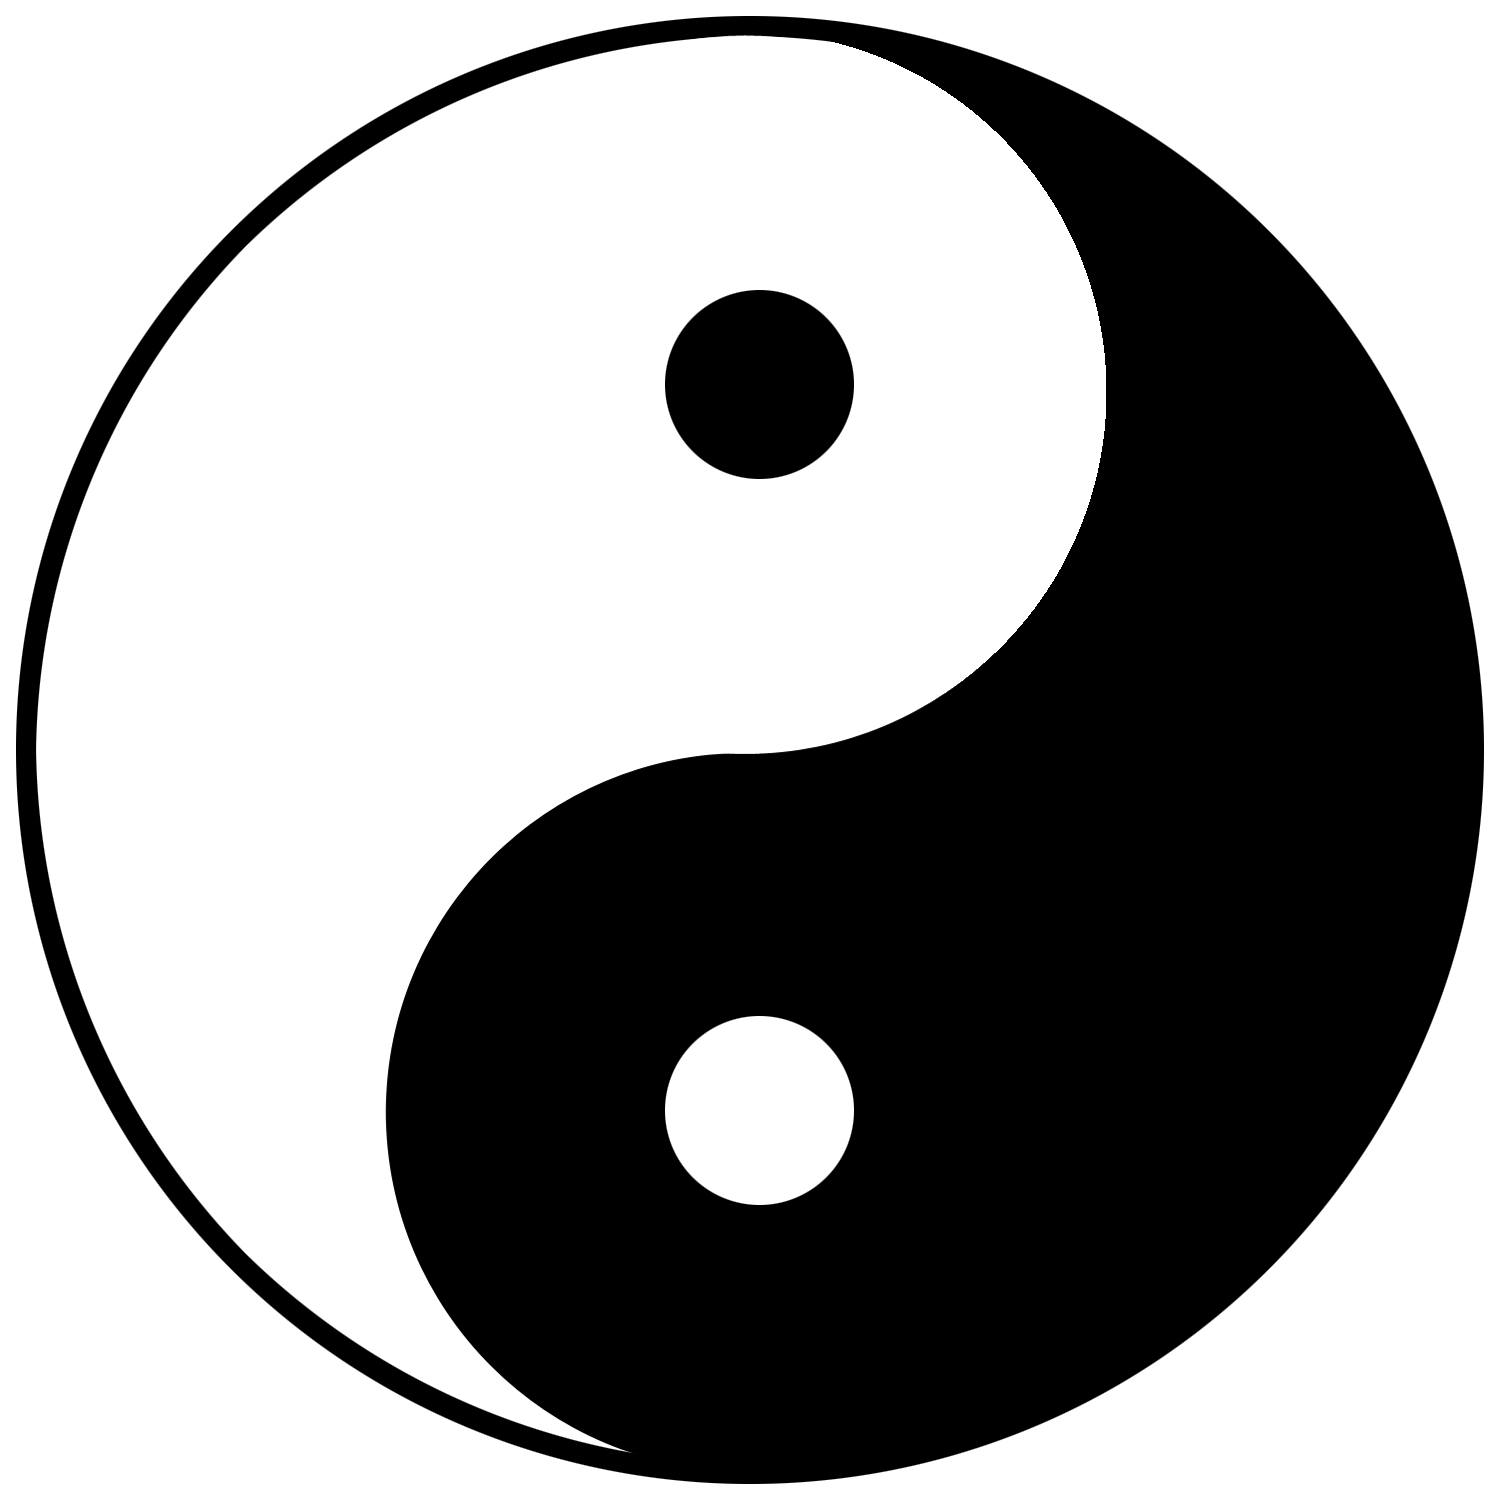 Ying Yang Sign Wallpaper